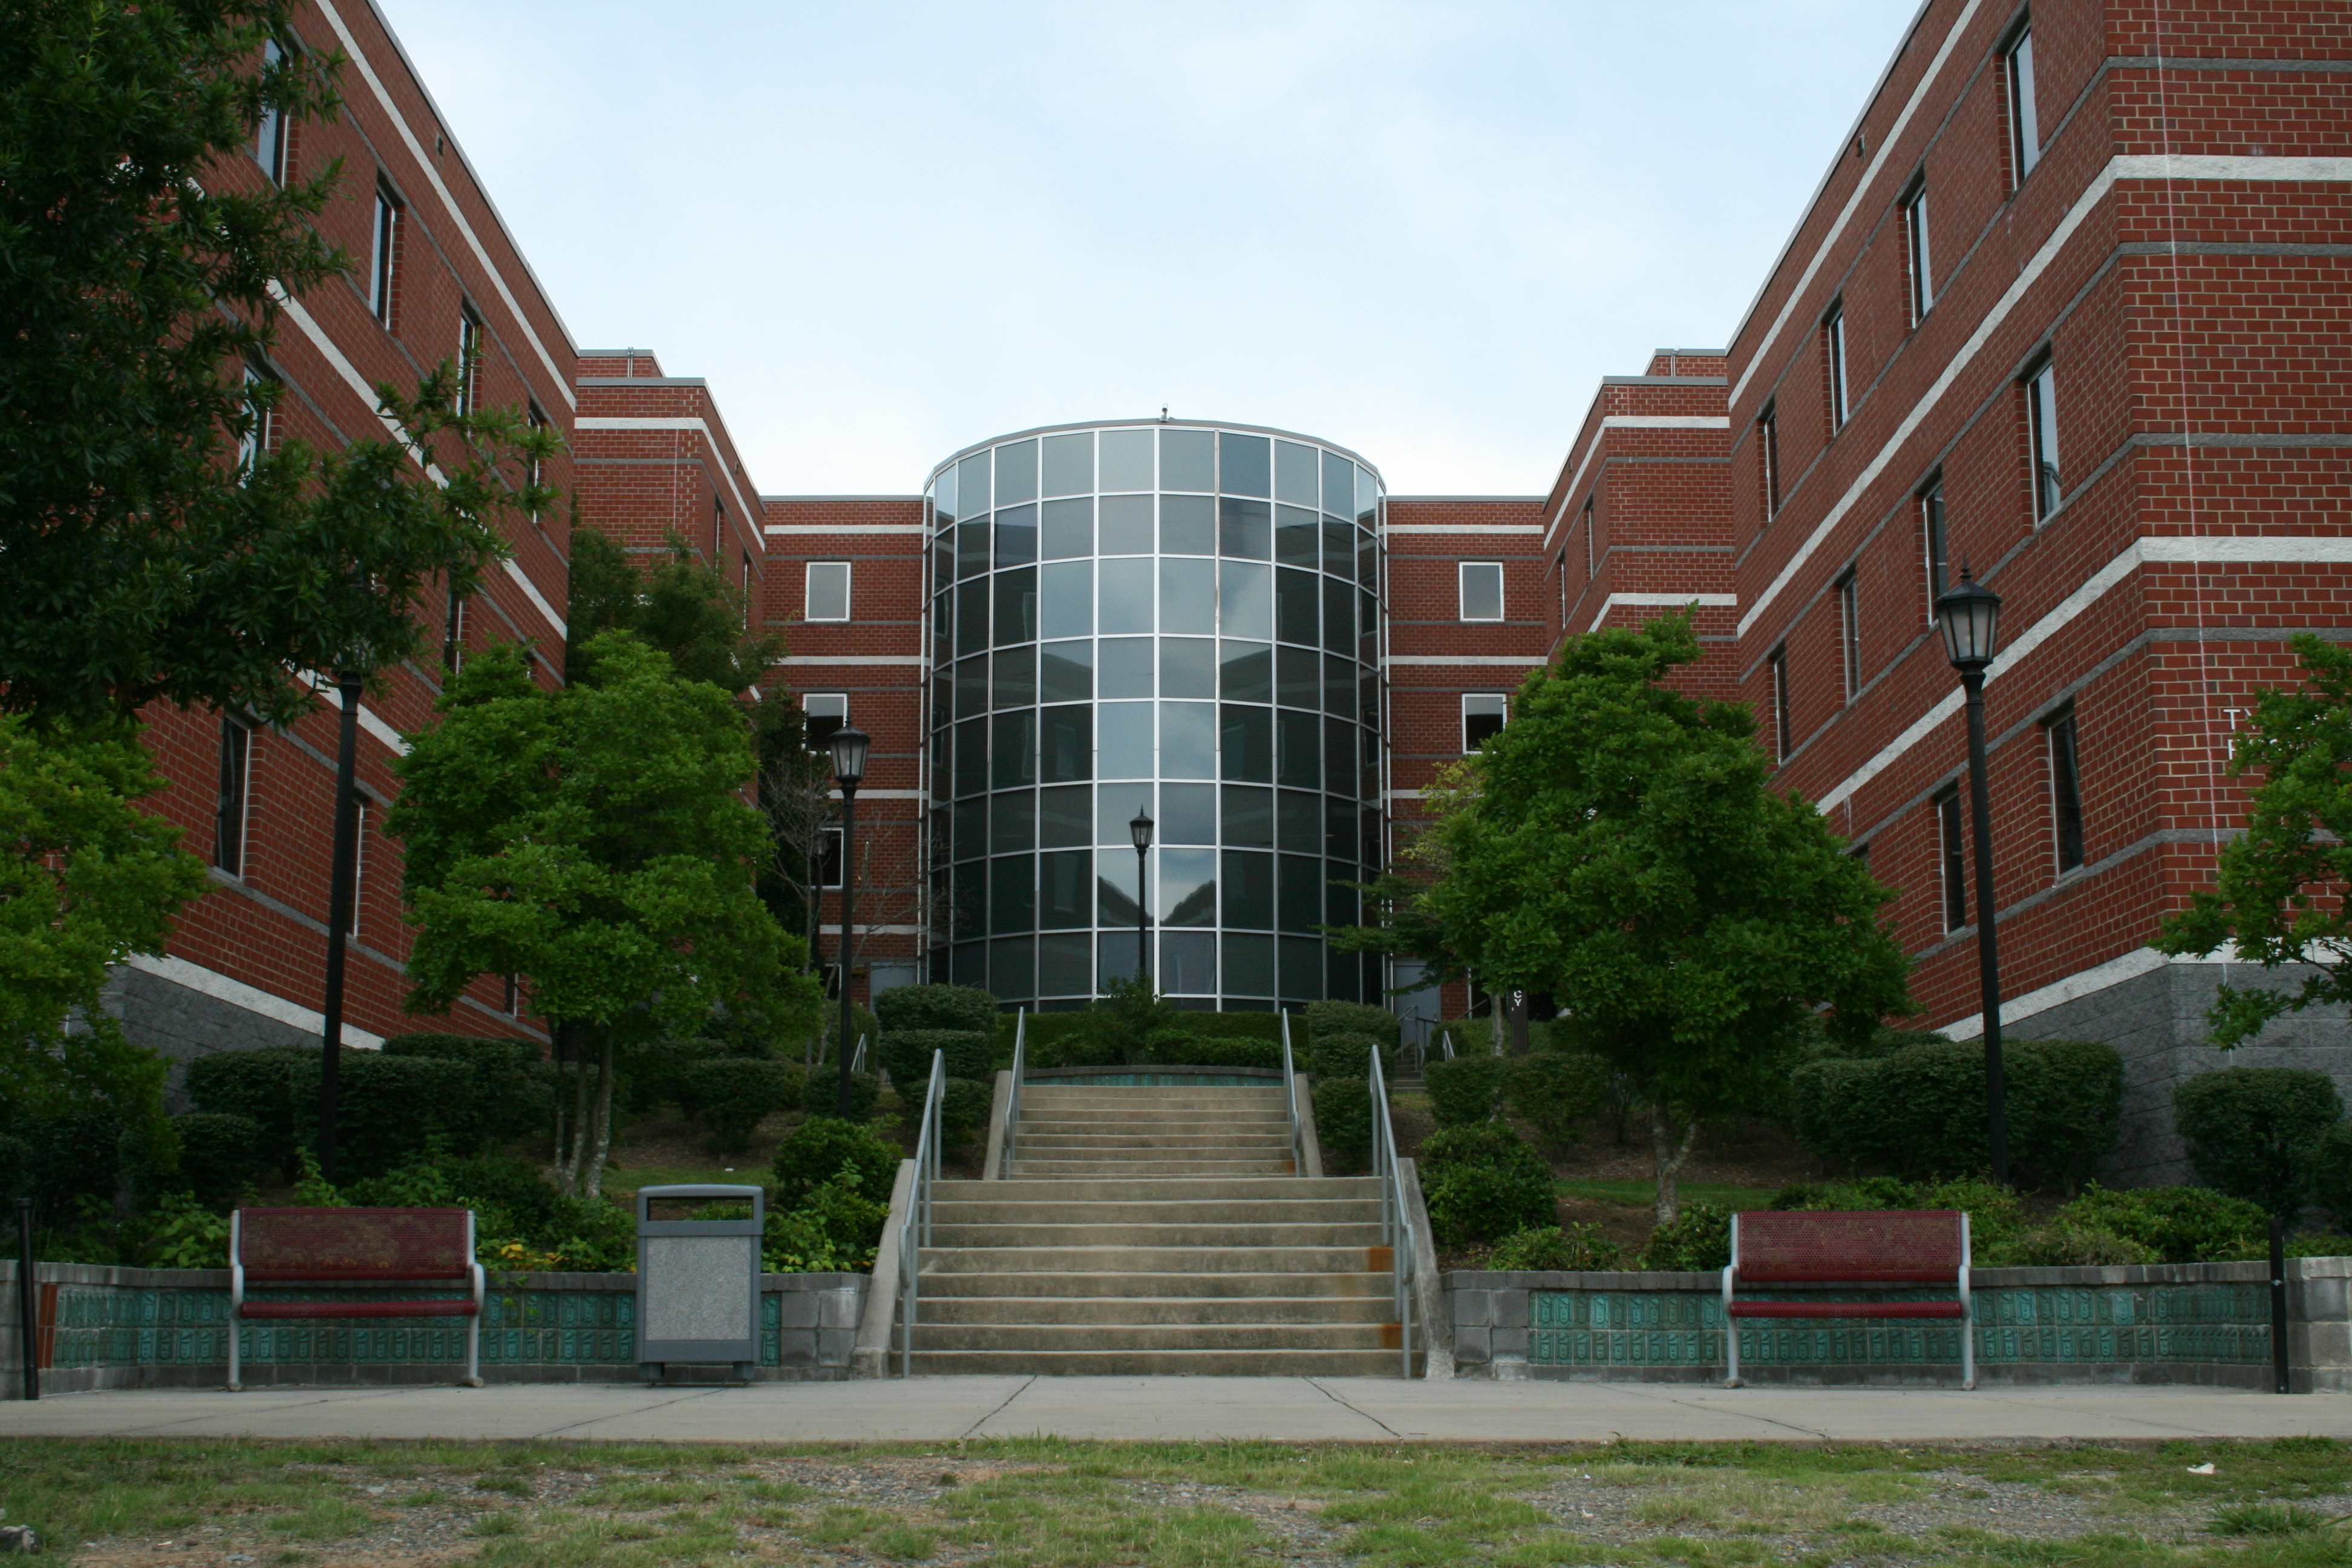 North Carolina Central University – Wikipedia